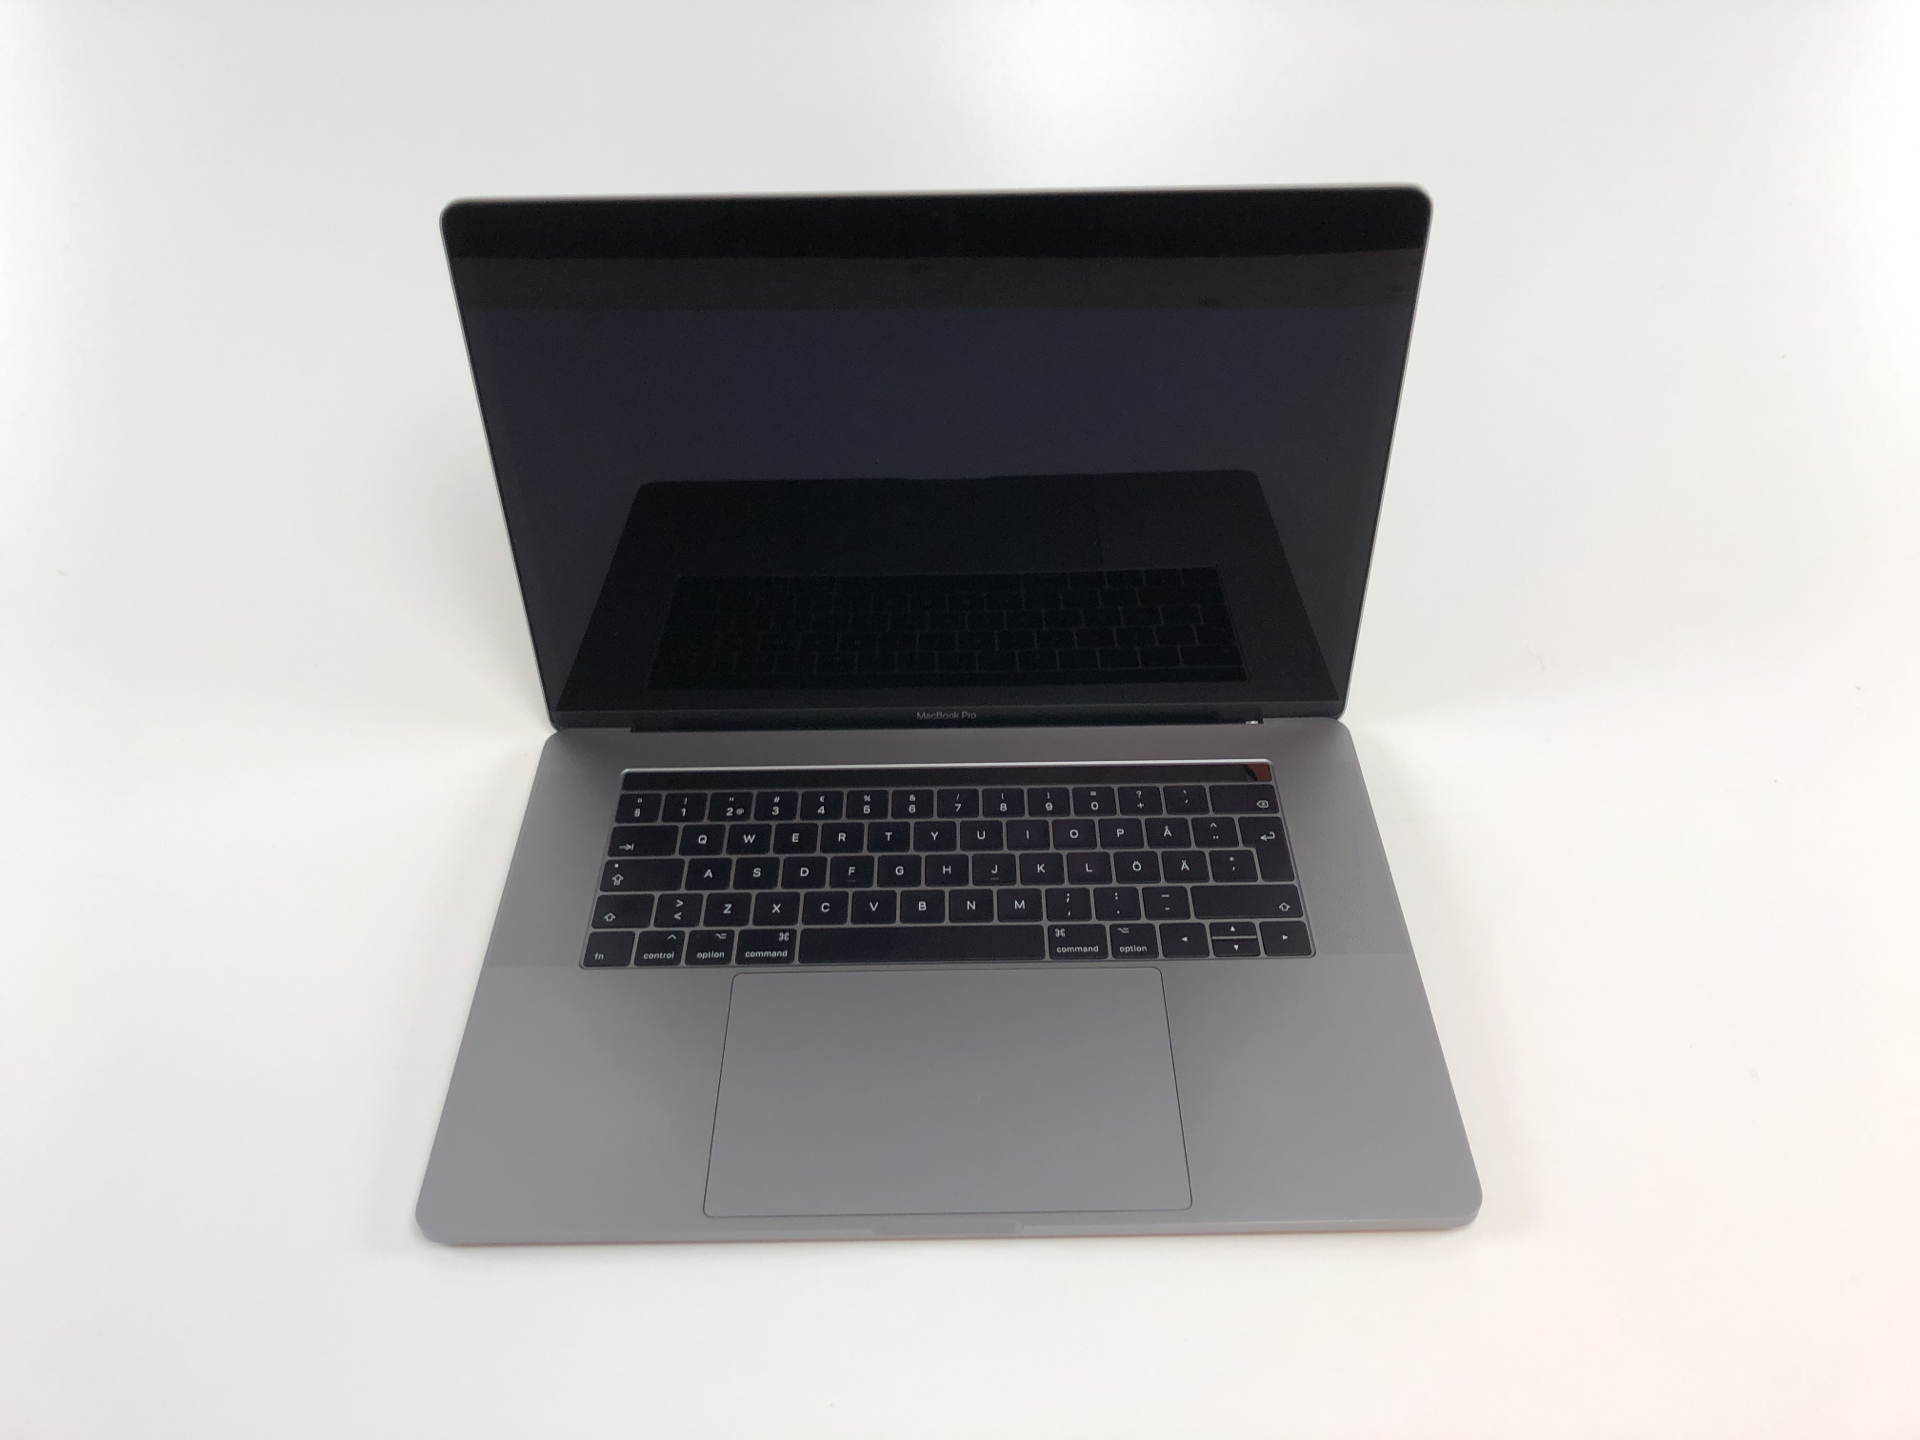 "MacBook Pro 15"" Touch Bar Mid 2017 (Intel Quad-Core i7 2.9 GHz 16 GB RAM 512 GB SSD), Space Gray, Intel Quad-Core i7 2.9 GHz, 16 GB RAM, 512 GB SSD, bild 3"